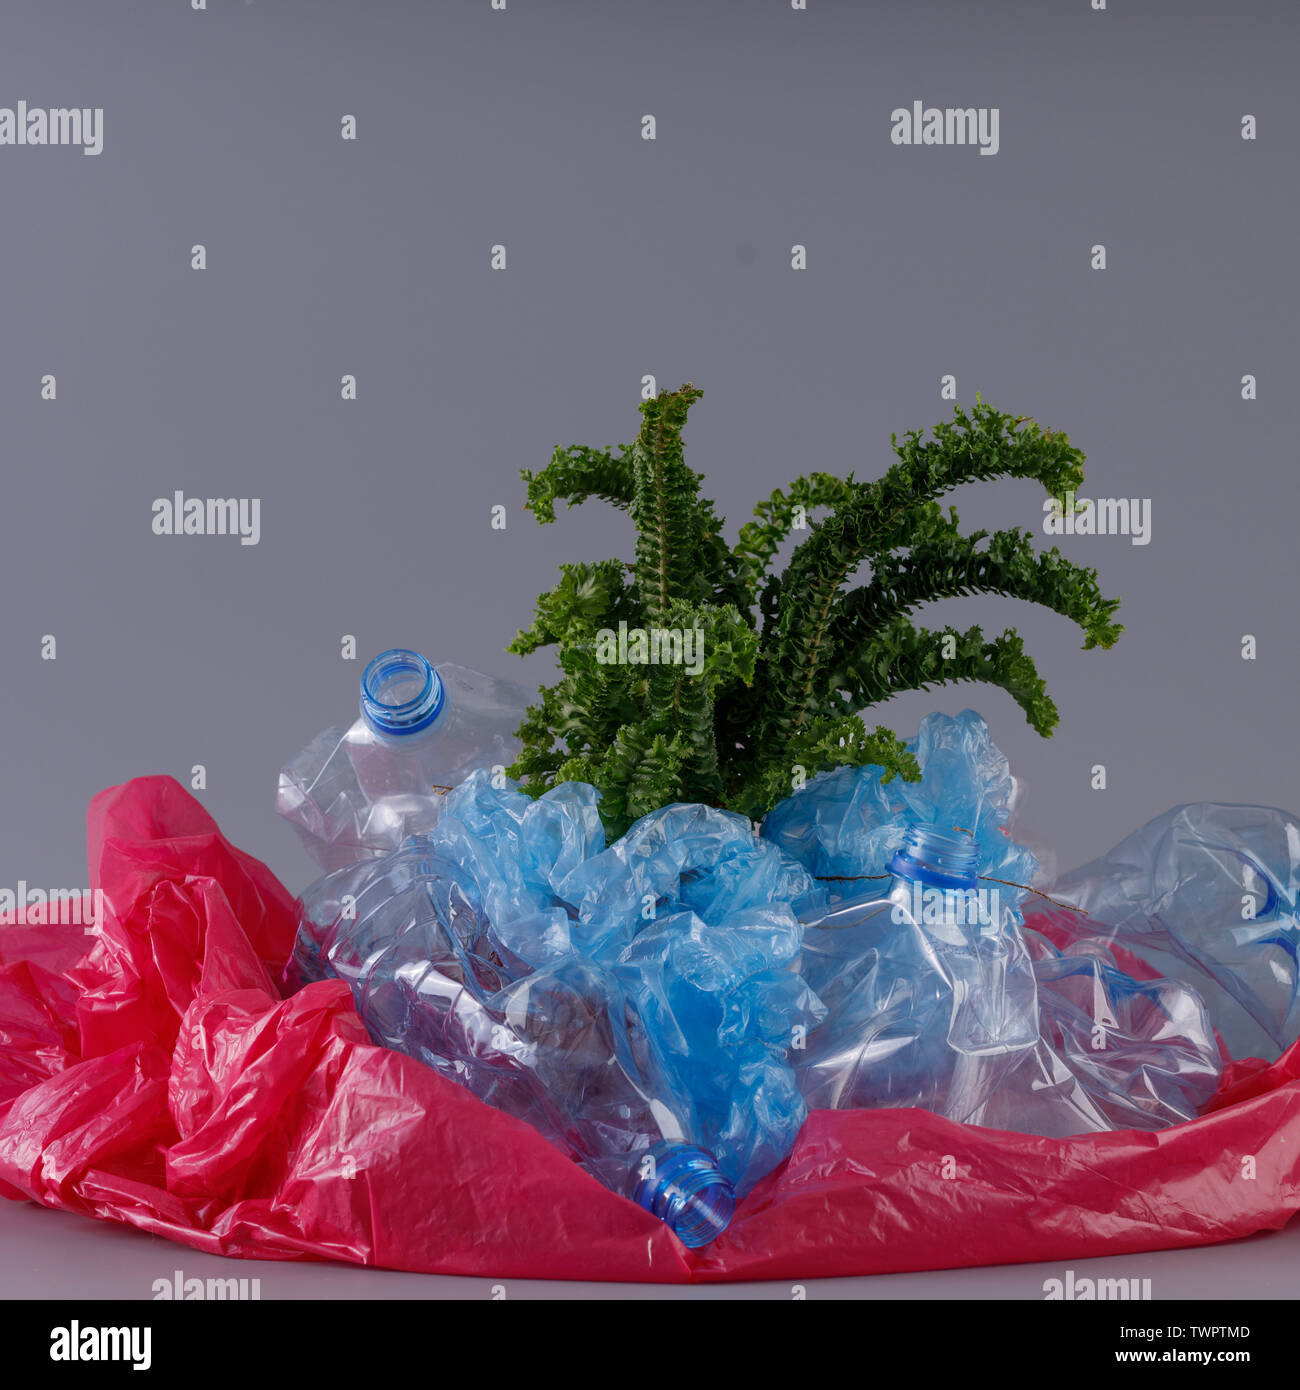 Green tender fern plant in a heap of plastic. Concept of environmental protection and plastic processing. - Stock Image